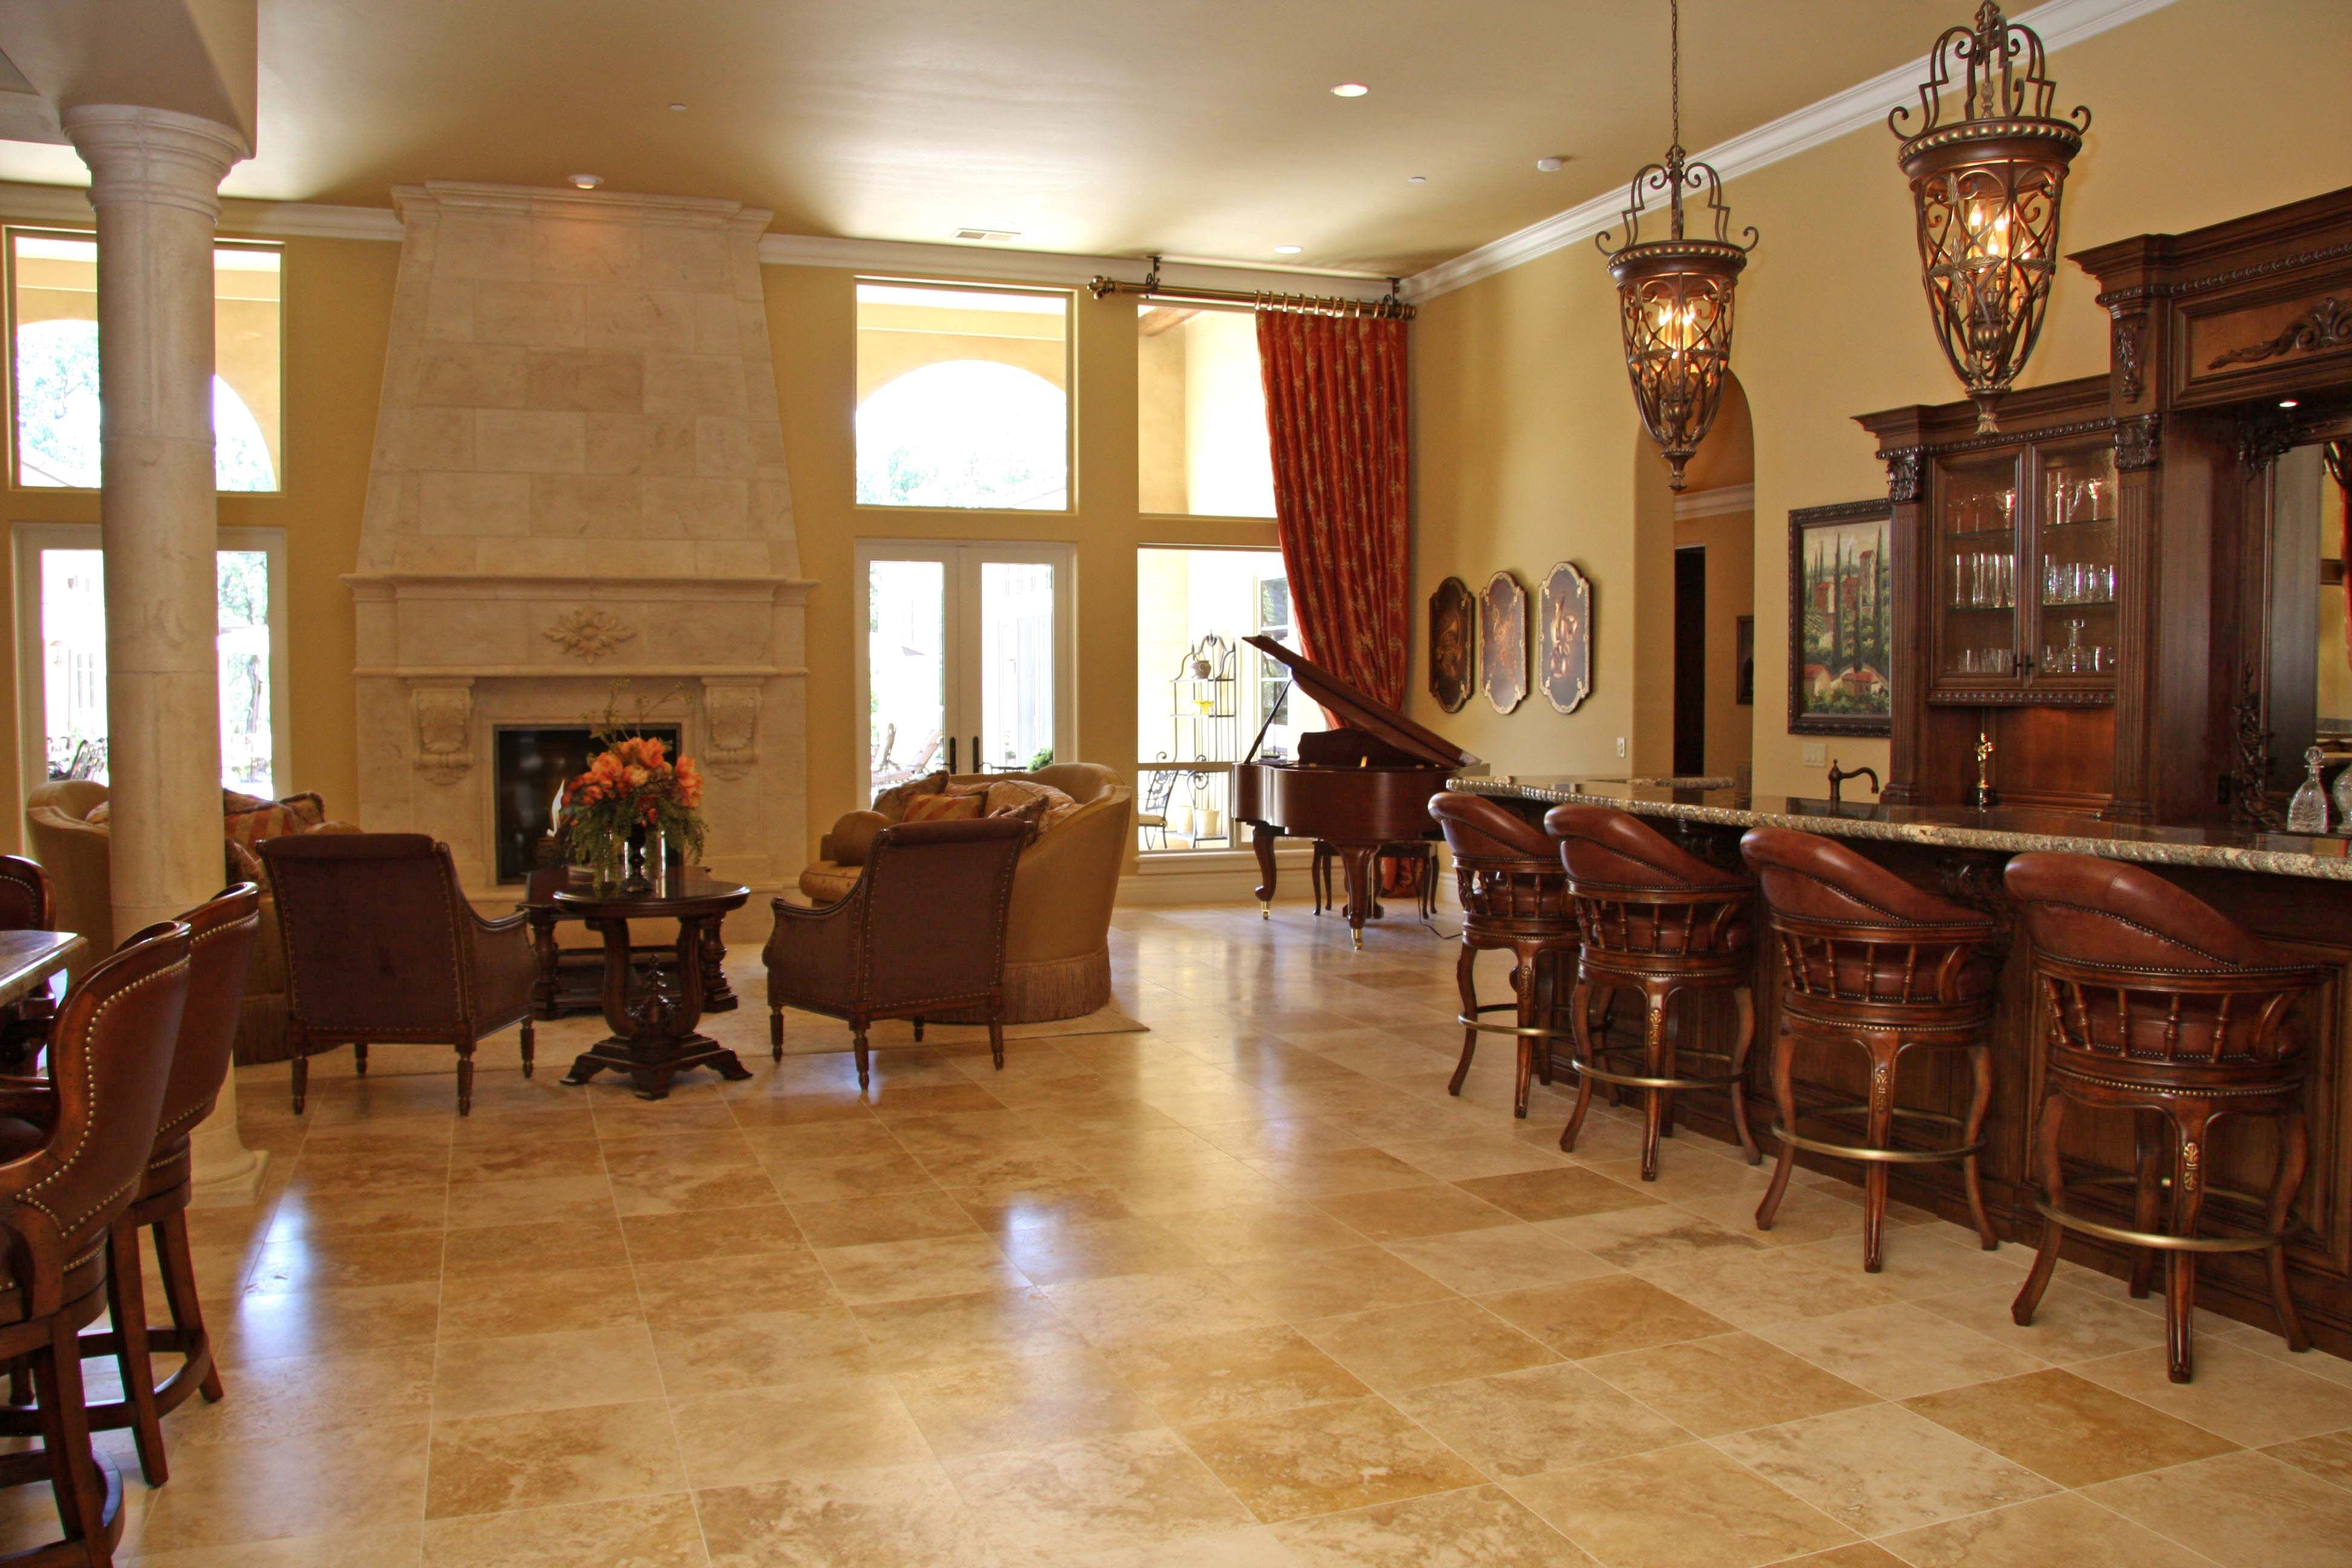 Image result for stone floors in kitchen and living room ...